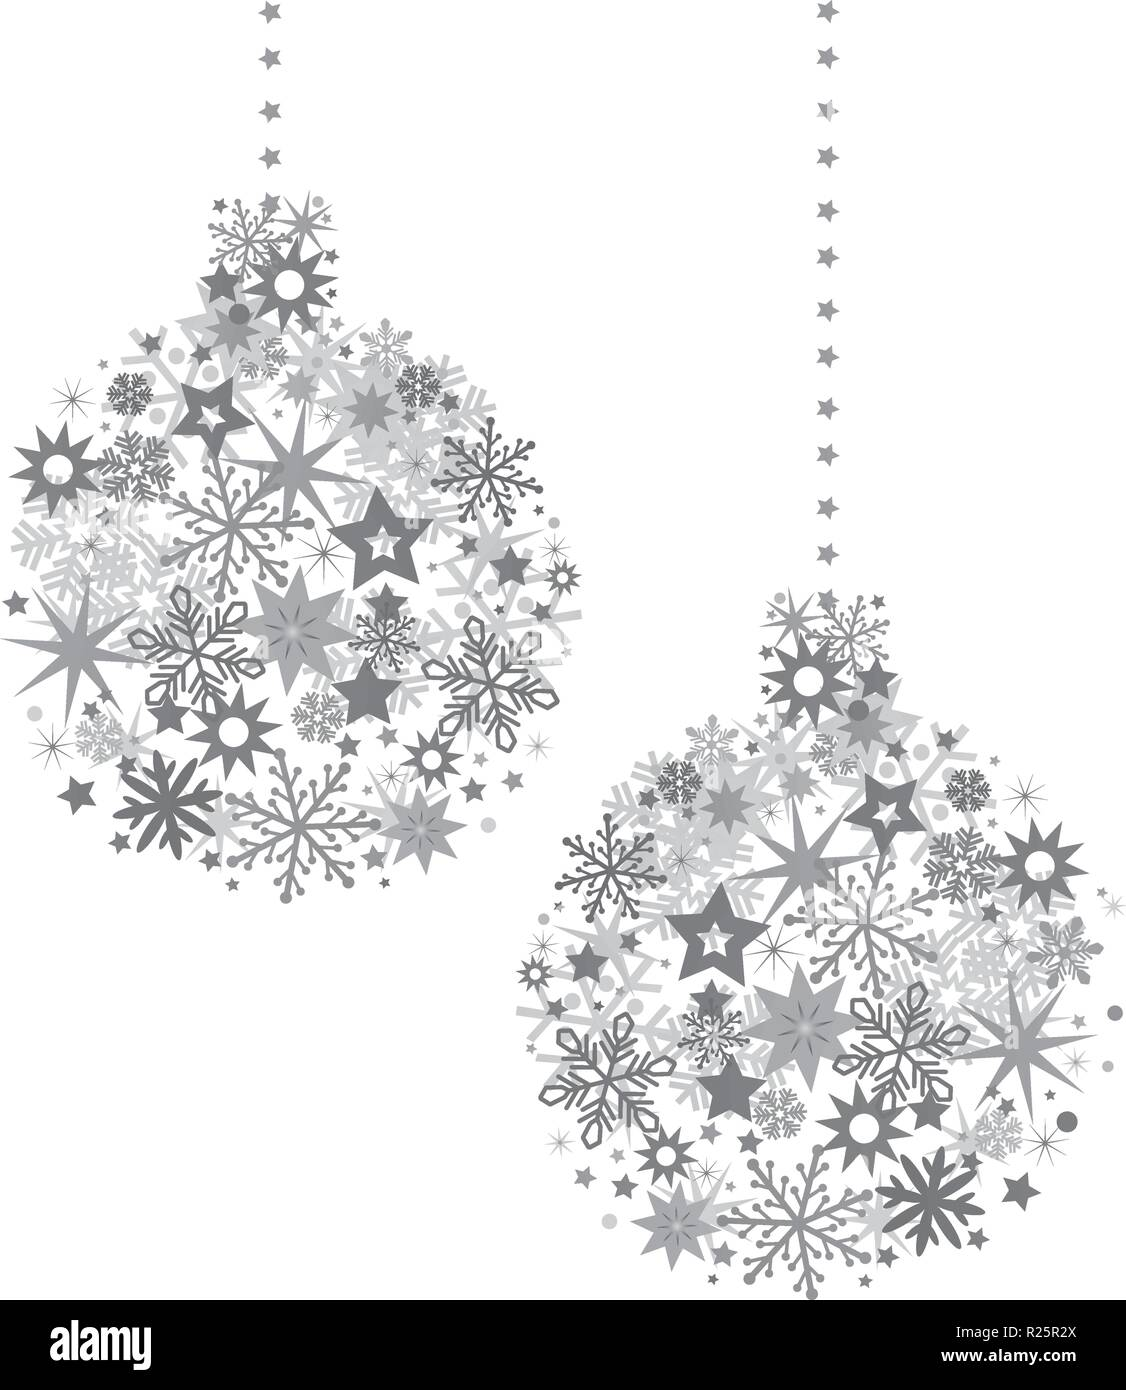 Christmas ball with silver stars illustration with sparkling Christmas glitter ornaments isolated on white - Stock Vector